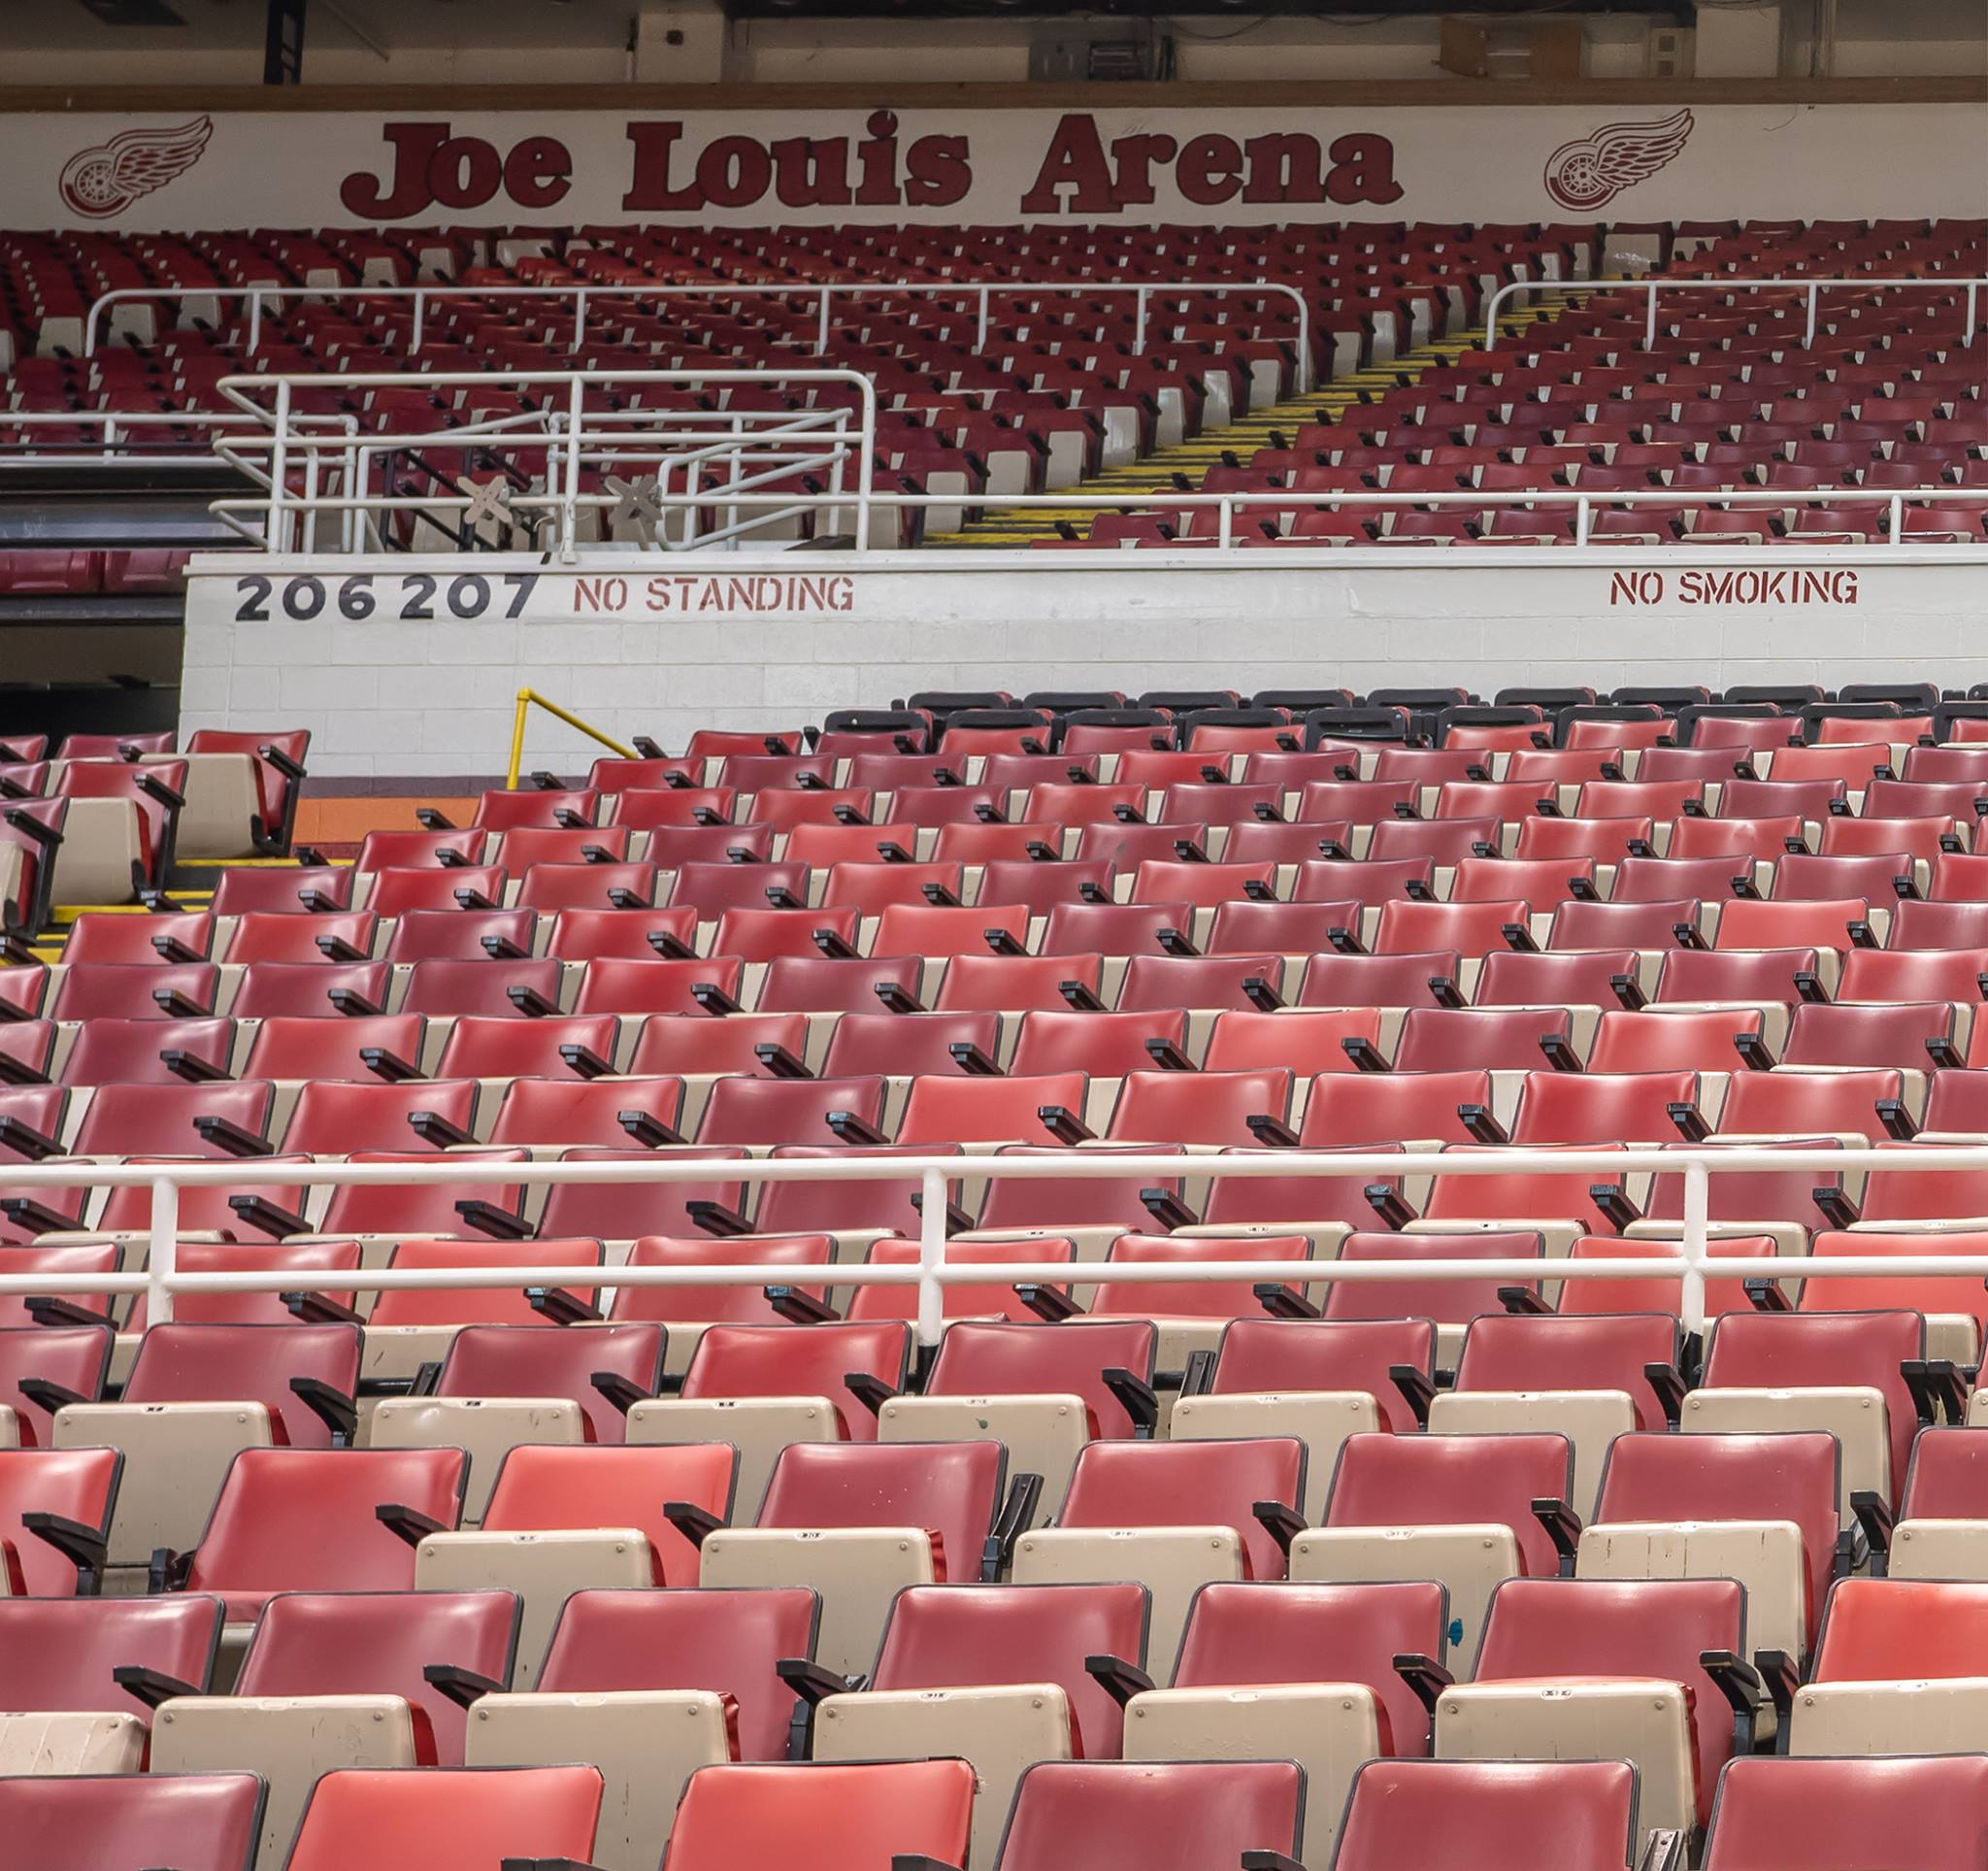 Buy Iconic Joe Louis Arena Seats!